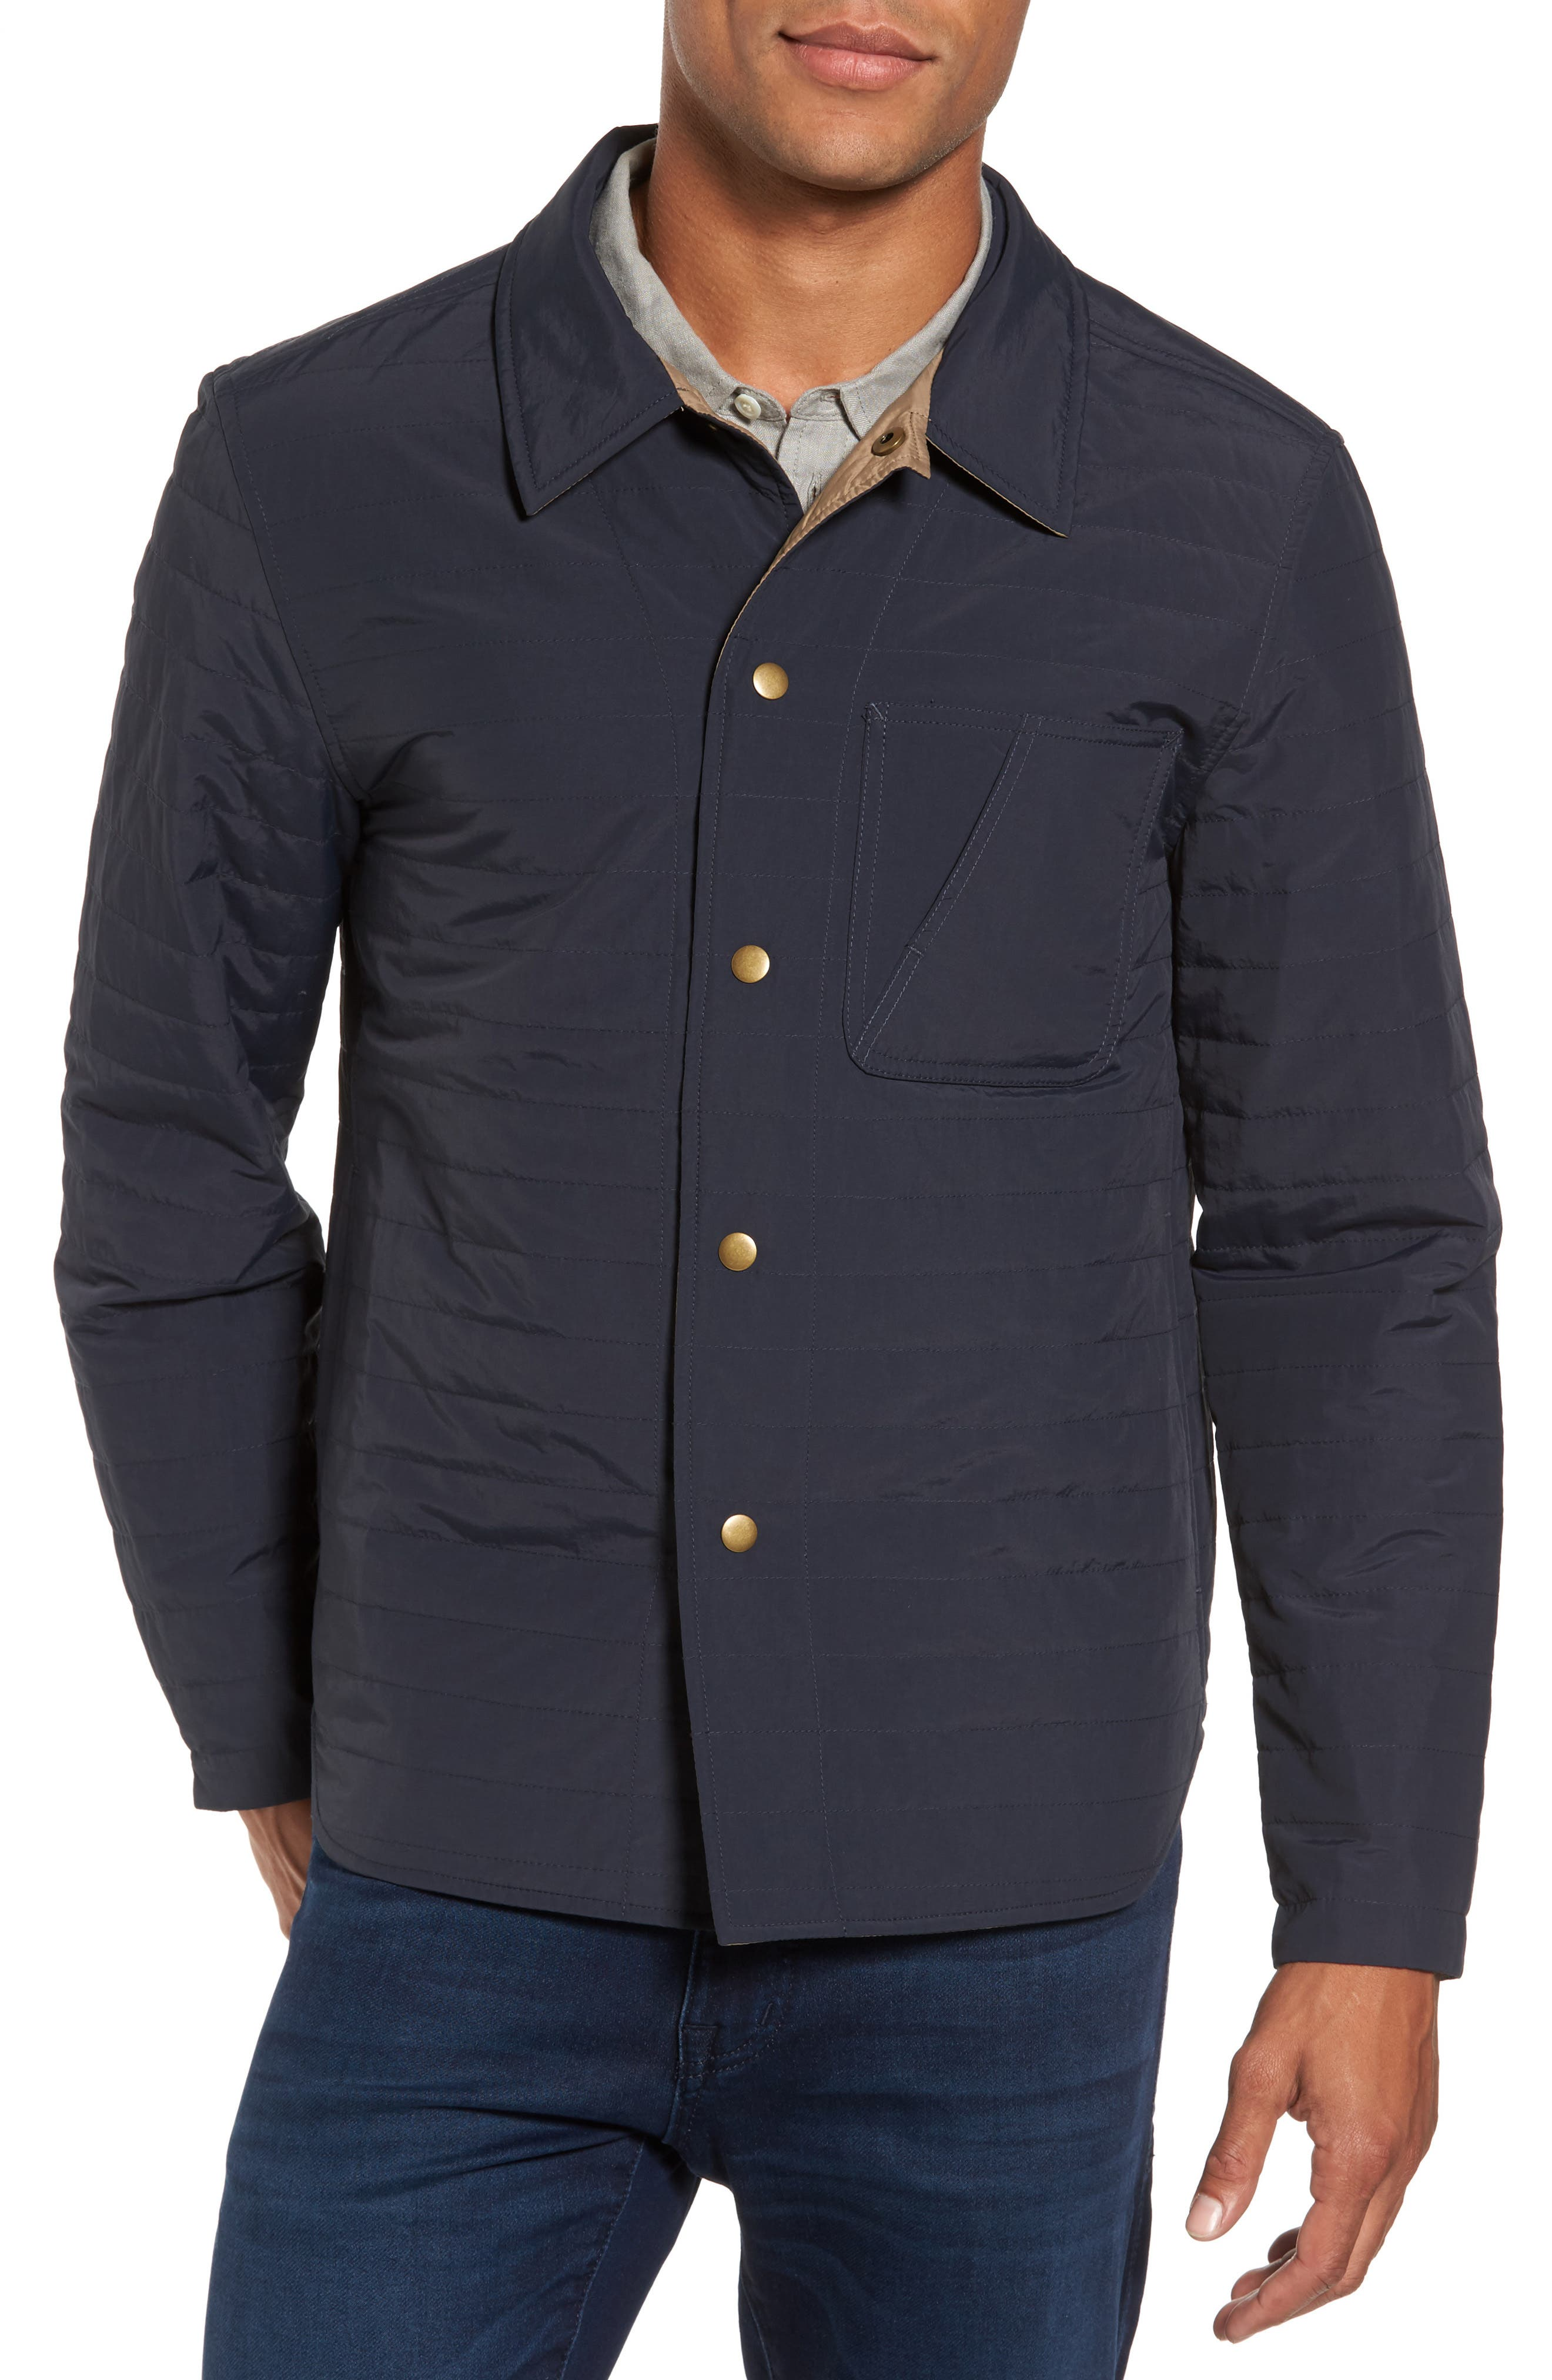 Leroy Quilted Shirt Jacket,                             Main thumbnail 1, color,                             410